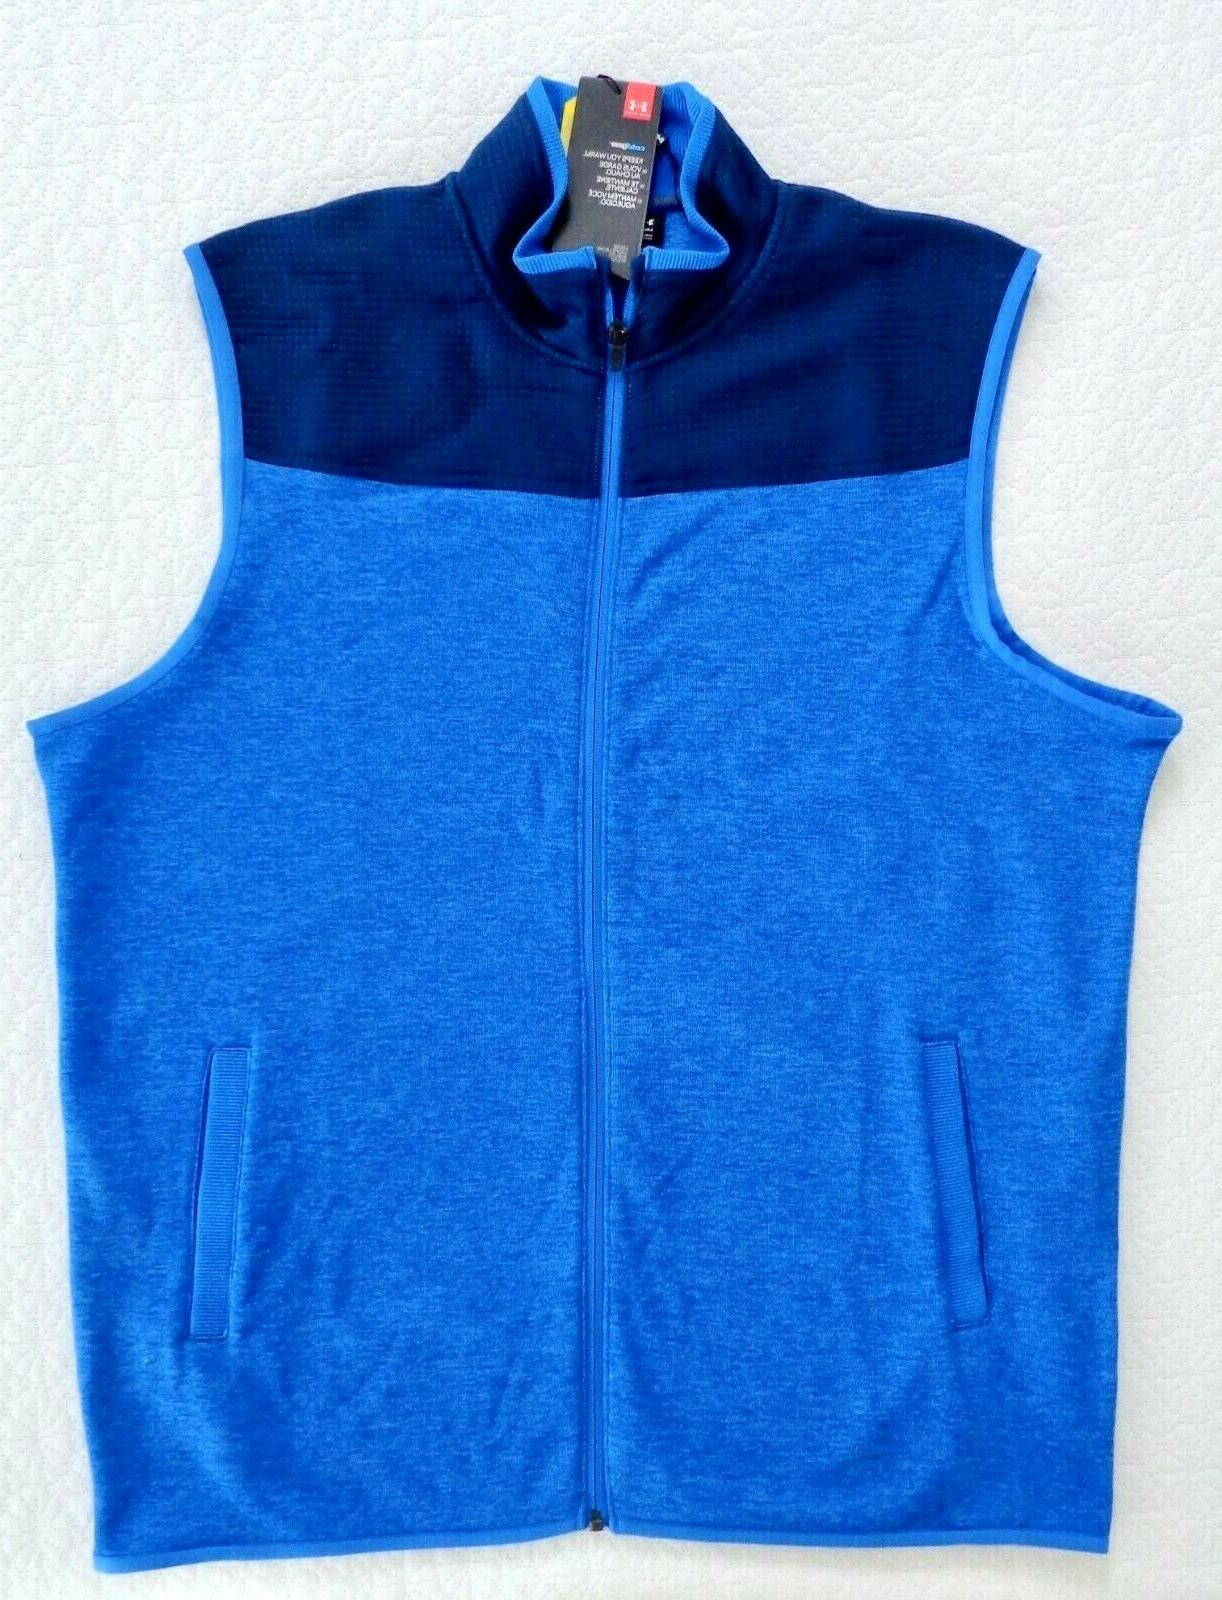 Under Armour Cold Golf Vest #1307049-437 size Fit NWT